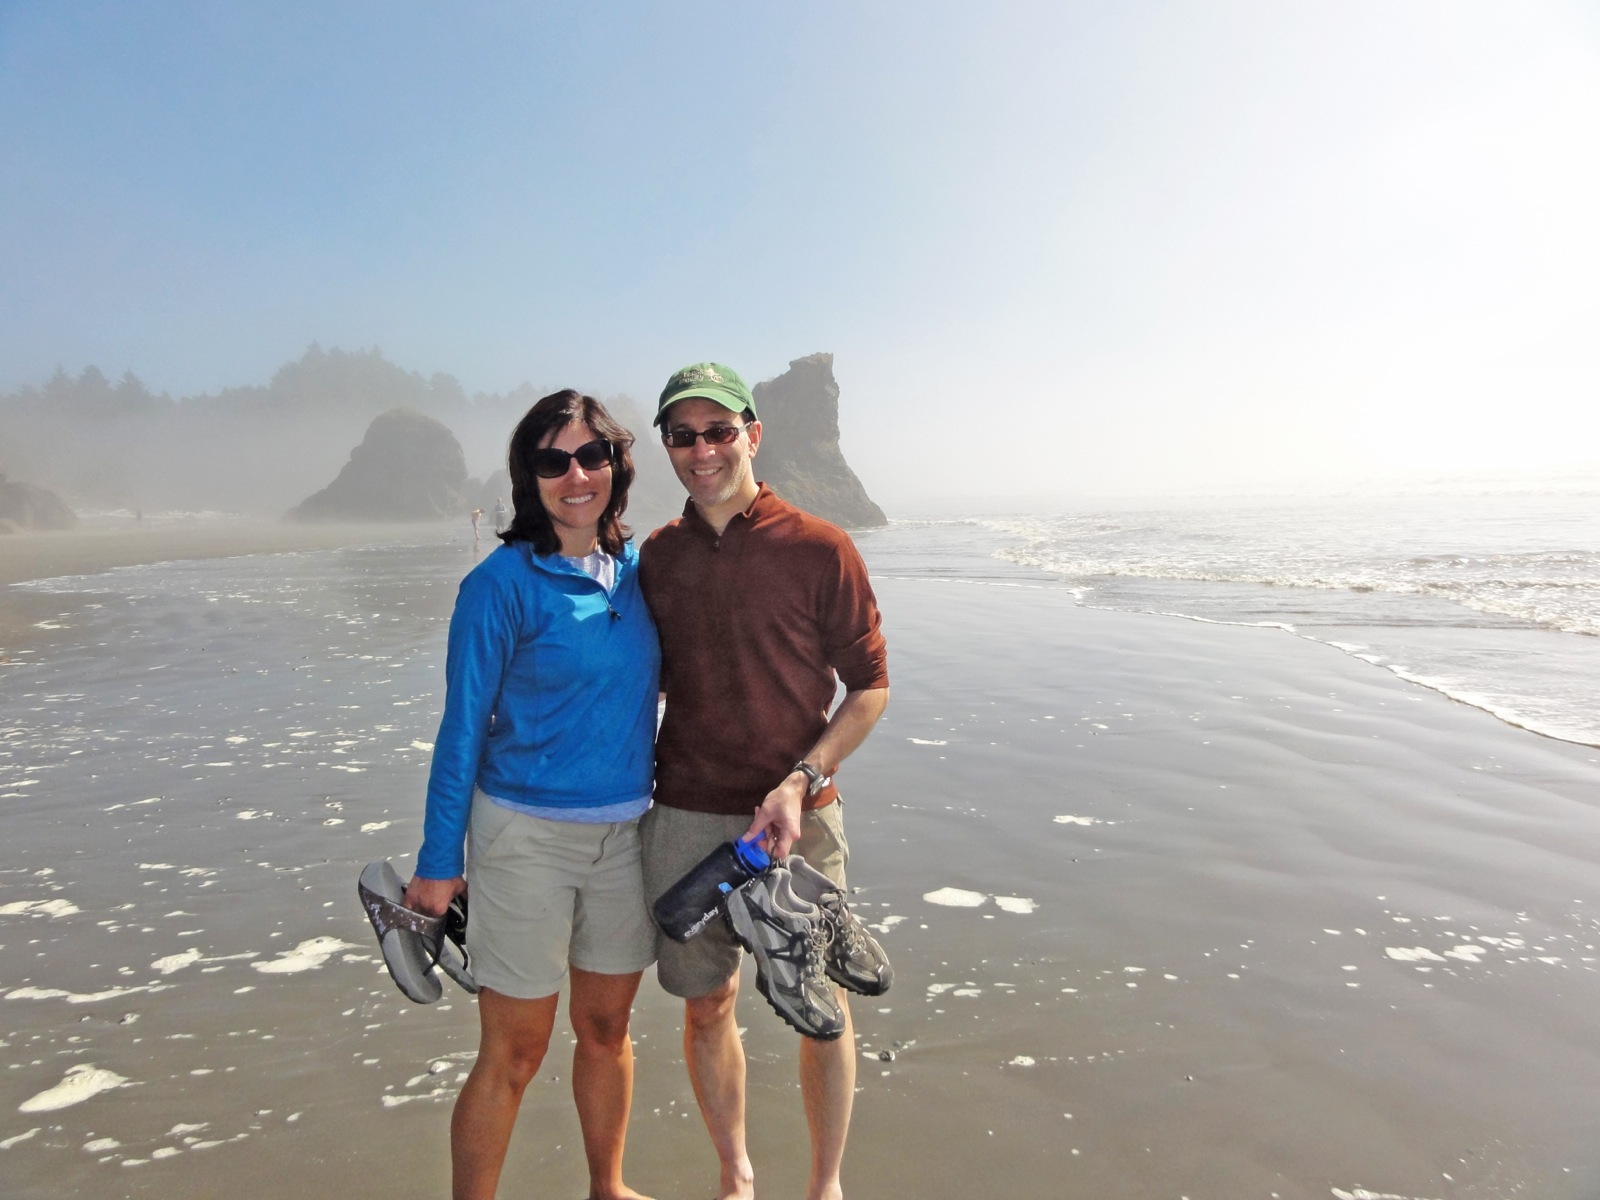 Lee and Amy Friedman carry their shoes and go barefoot on the misty beach of the Pacific Coast.